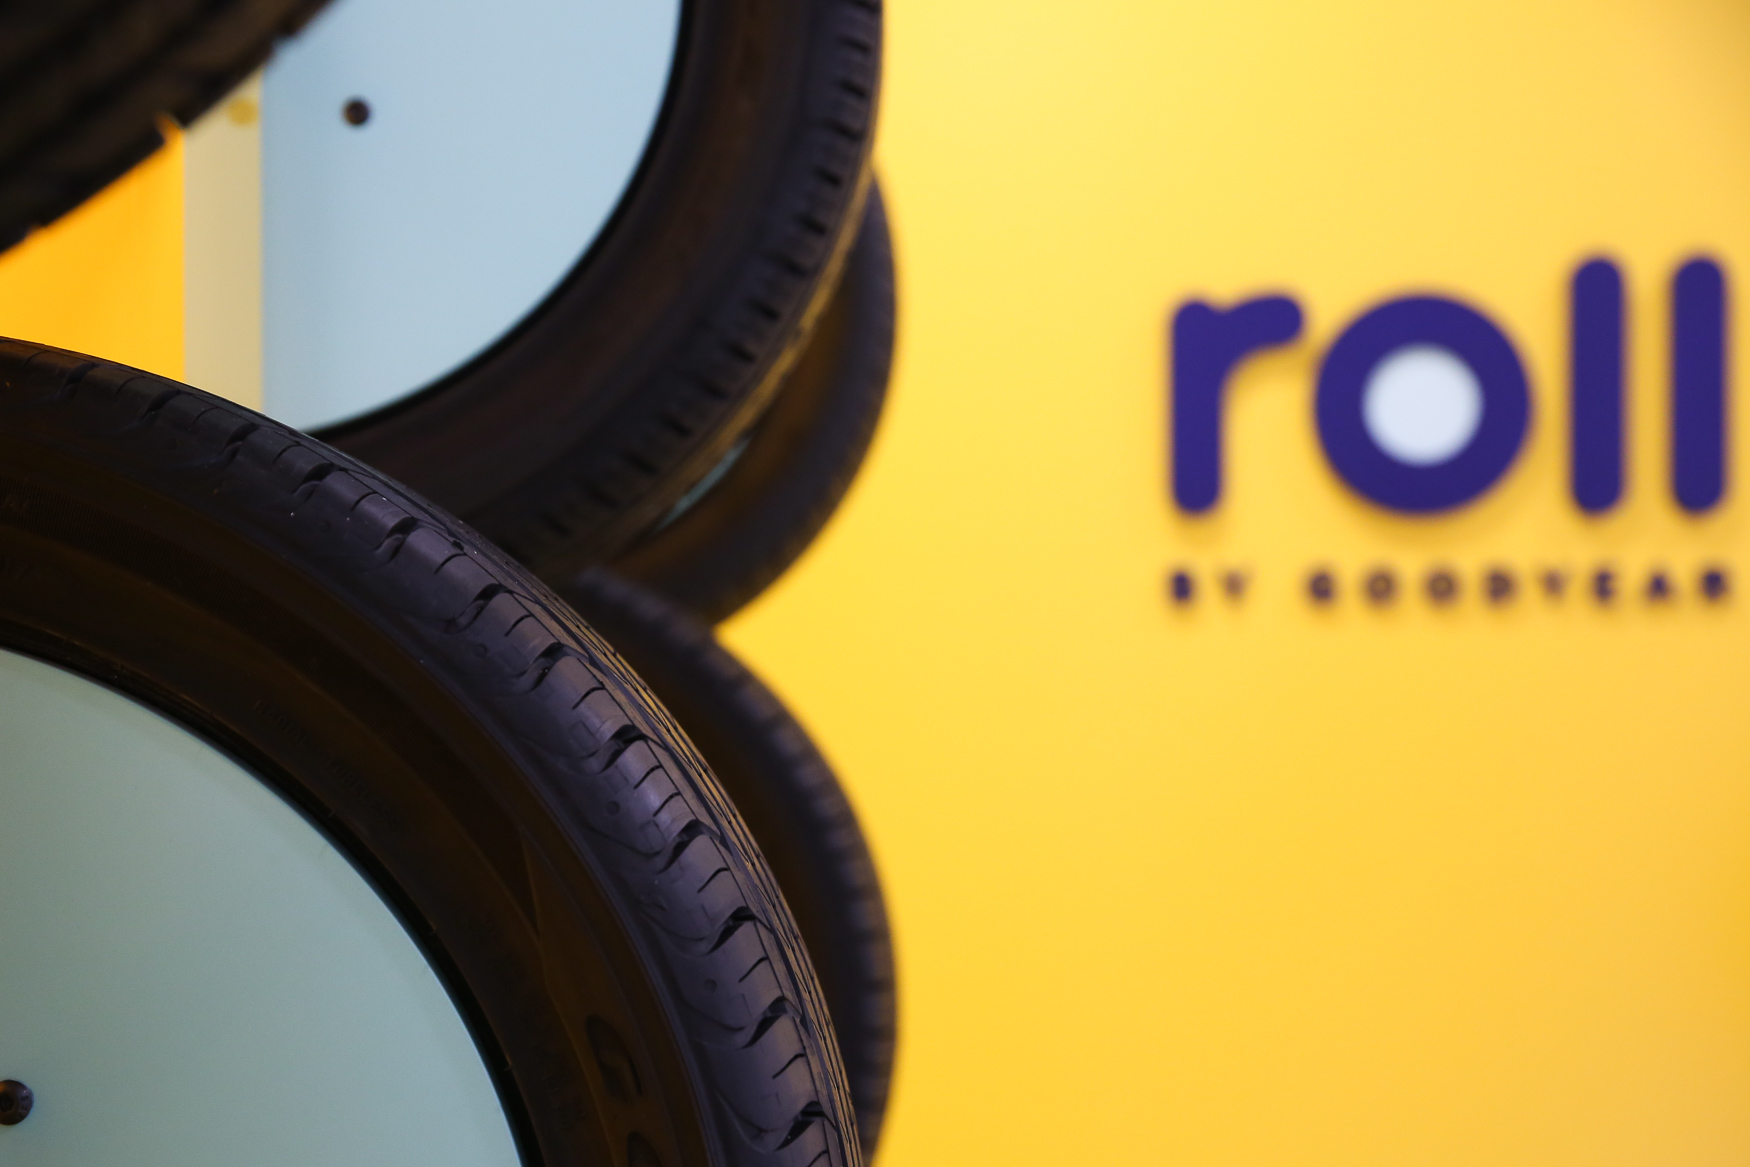 Goodyear is bringing a new model to bring tires to consumers with Roll. The flagship store opened today in Bethesda, Maryland, with the help of Lauren Oshie - the wife of Caps player T.J. Oshie. Roll, which is geared towards millennials, allows you to get your tires replaced without having to wait in the store. You can buy the tires using the Roll by Goodyear website, either online or in the Bethesda showroom, and have them installed immediately or you can request the valet service, where Roll picks up your car, replaces your tires and returns it to wherever you are. The prices are comparable to a traditional tire store and you can view several options at different price points so you can find the tires that suit your needs and budget. The Bethesda location is the first of four which will open in Maryland in the coming months. (Amanda Andrade-Rhoades/DC Refined)